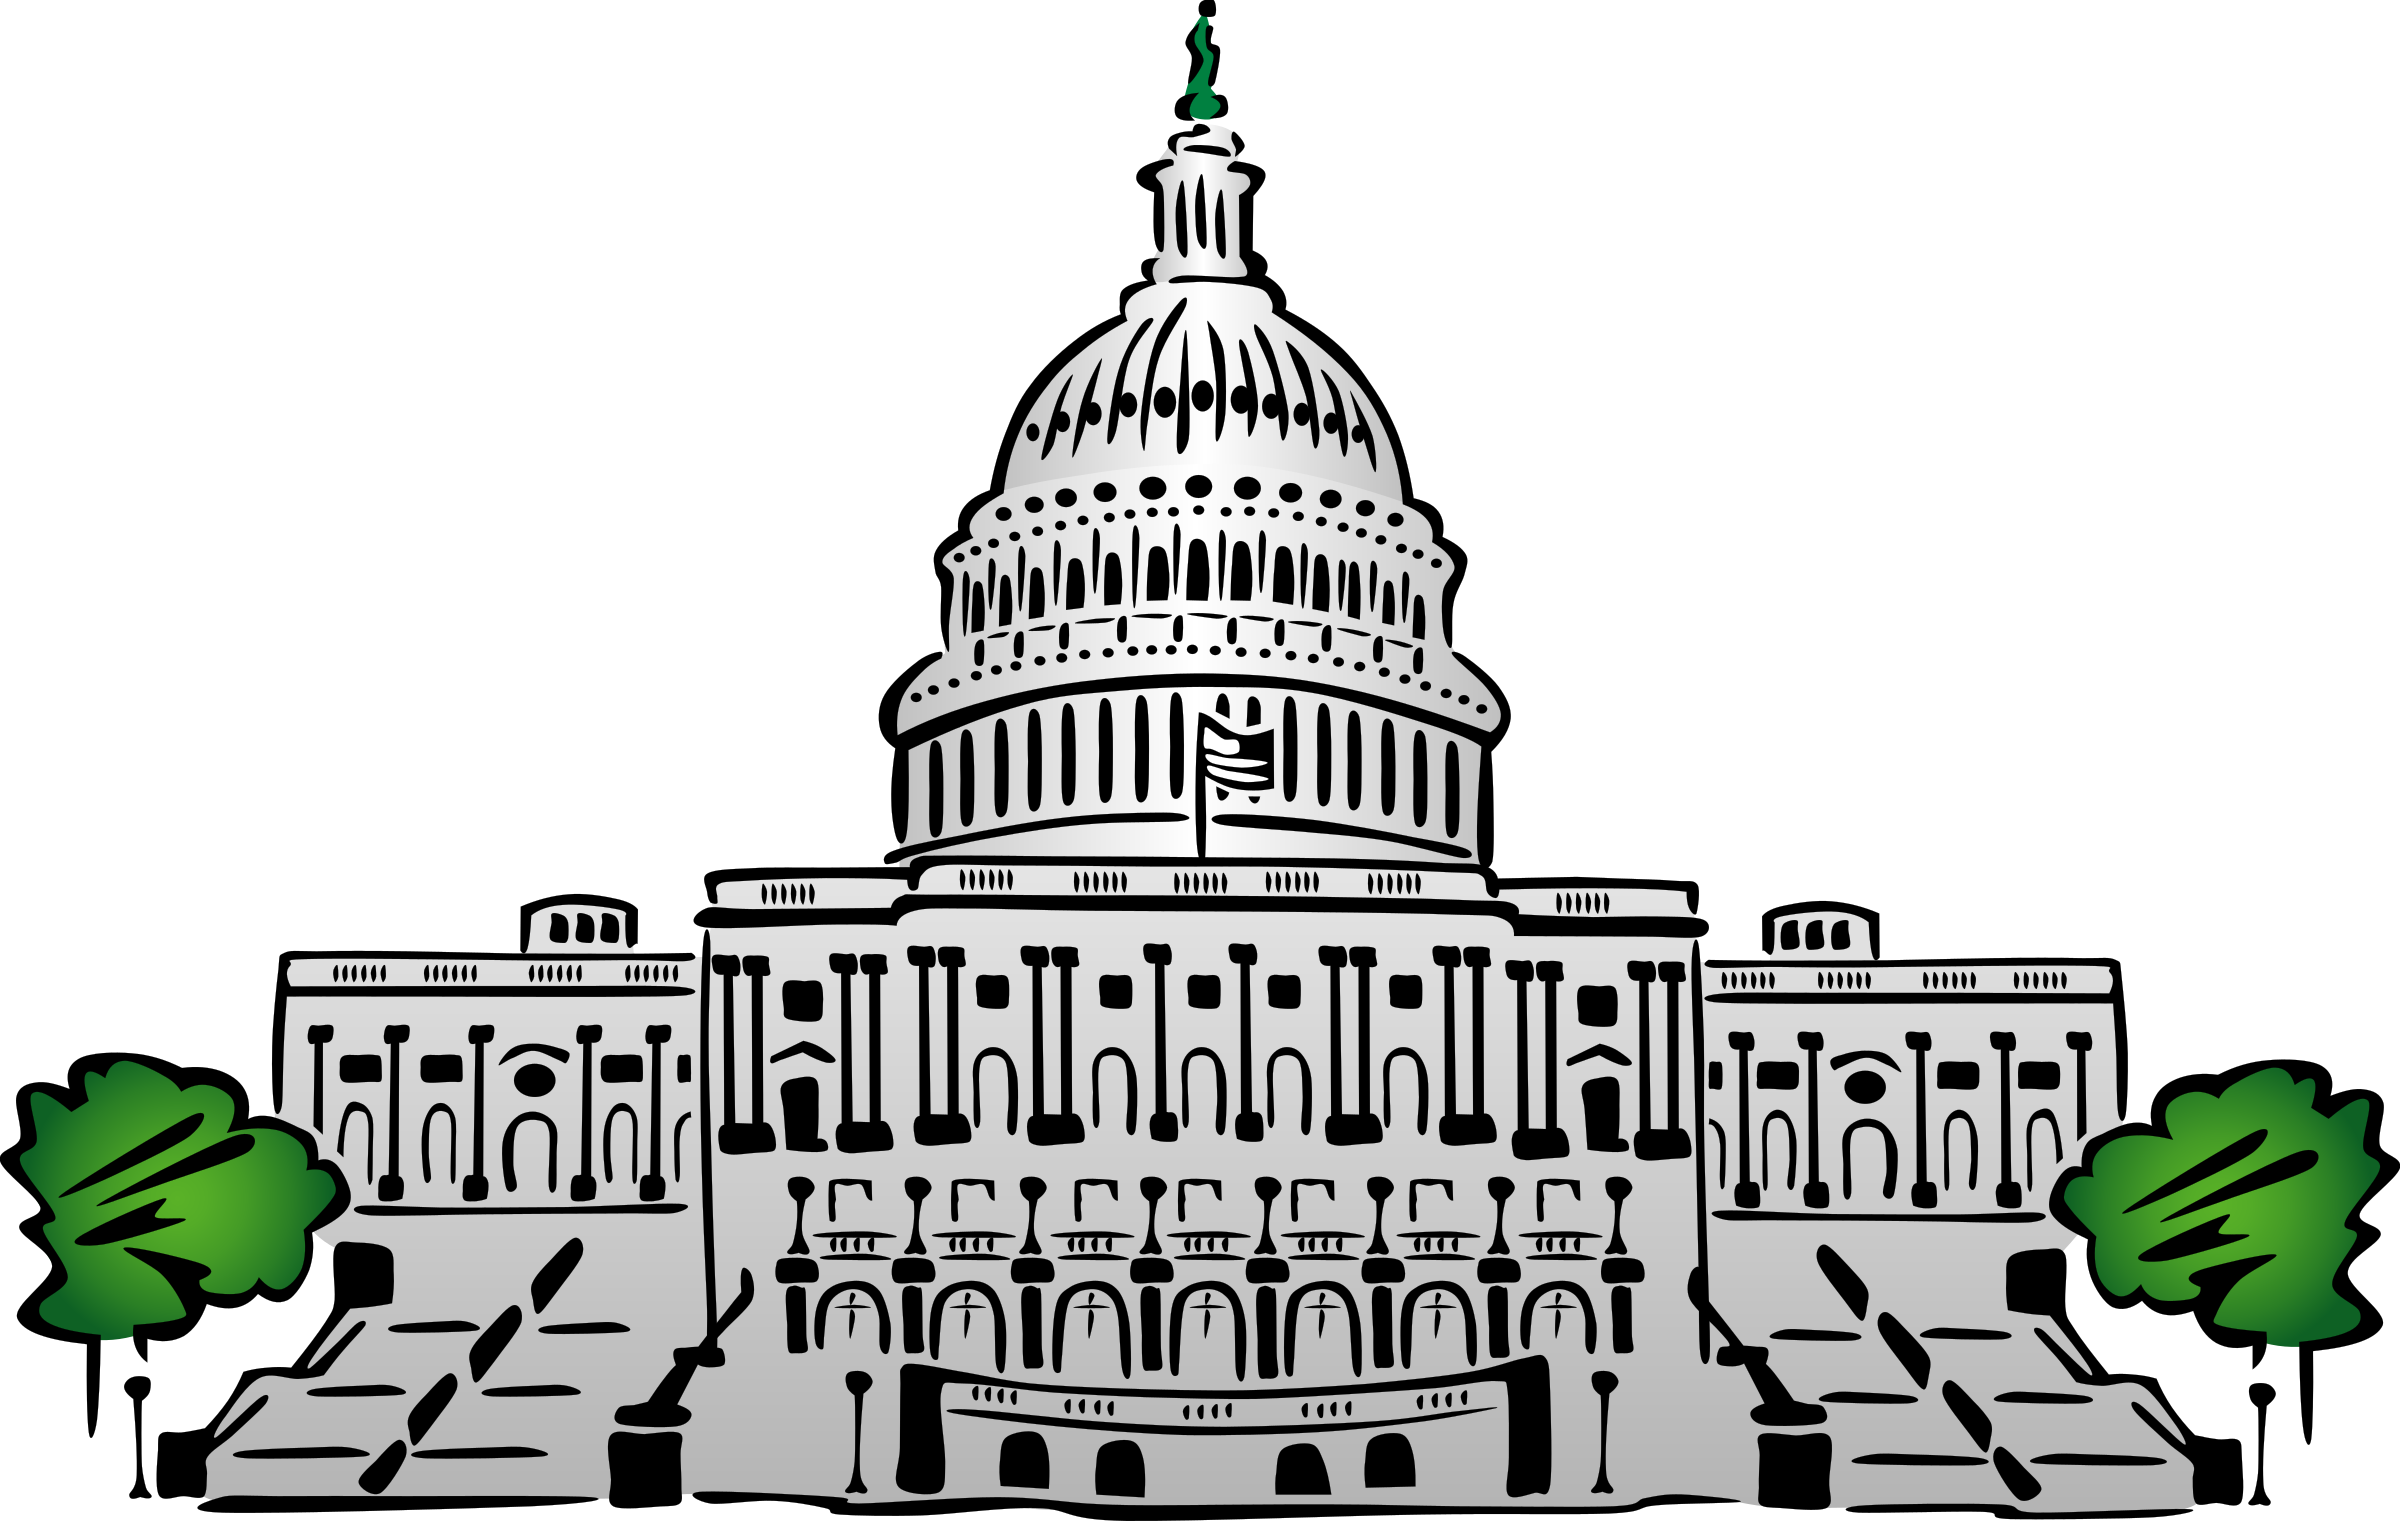 vector royalty free library Us building big image. Capitol clipart.